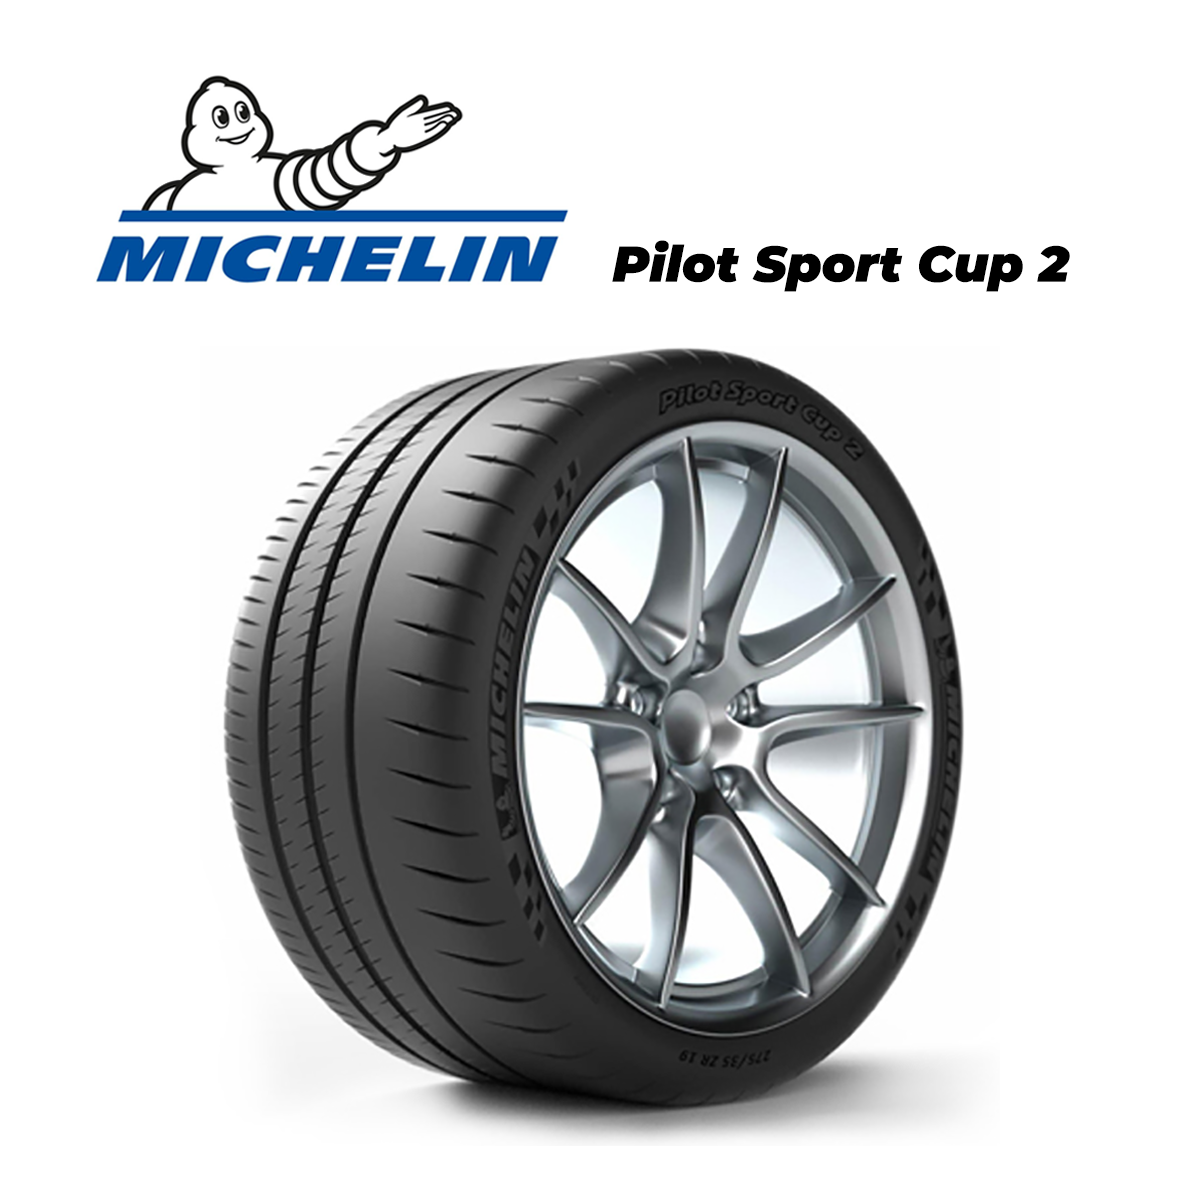 michelin pilot sport cup 2 tires perry performance. Black Bedroom Furniture Sets. Home Design Ideas